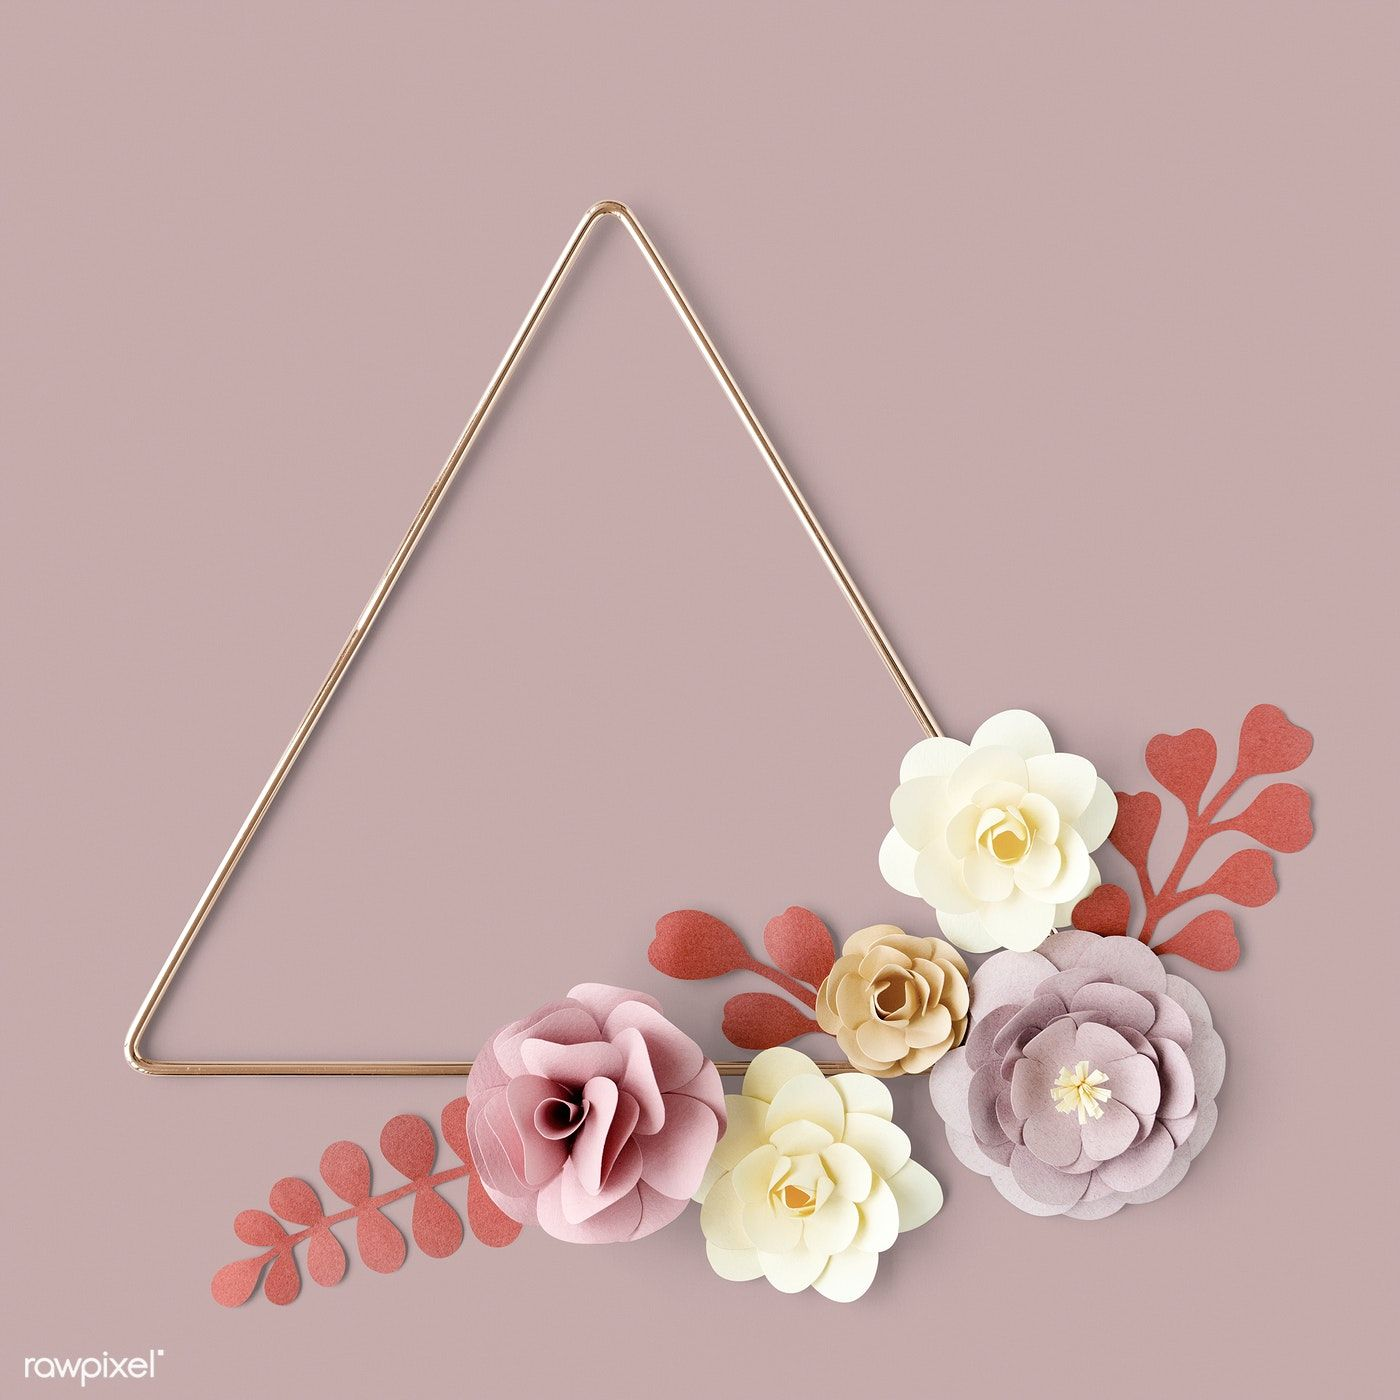 Download Premium Psd Of Triangle Gold Frame With Flower Paper